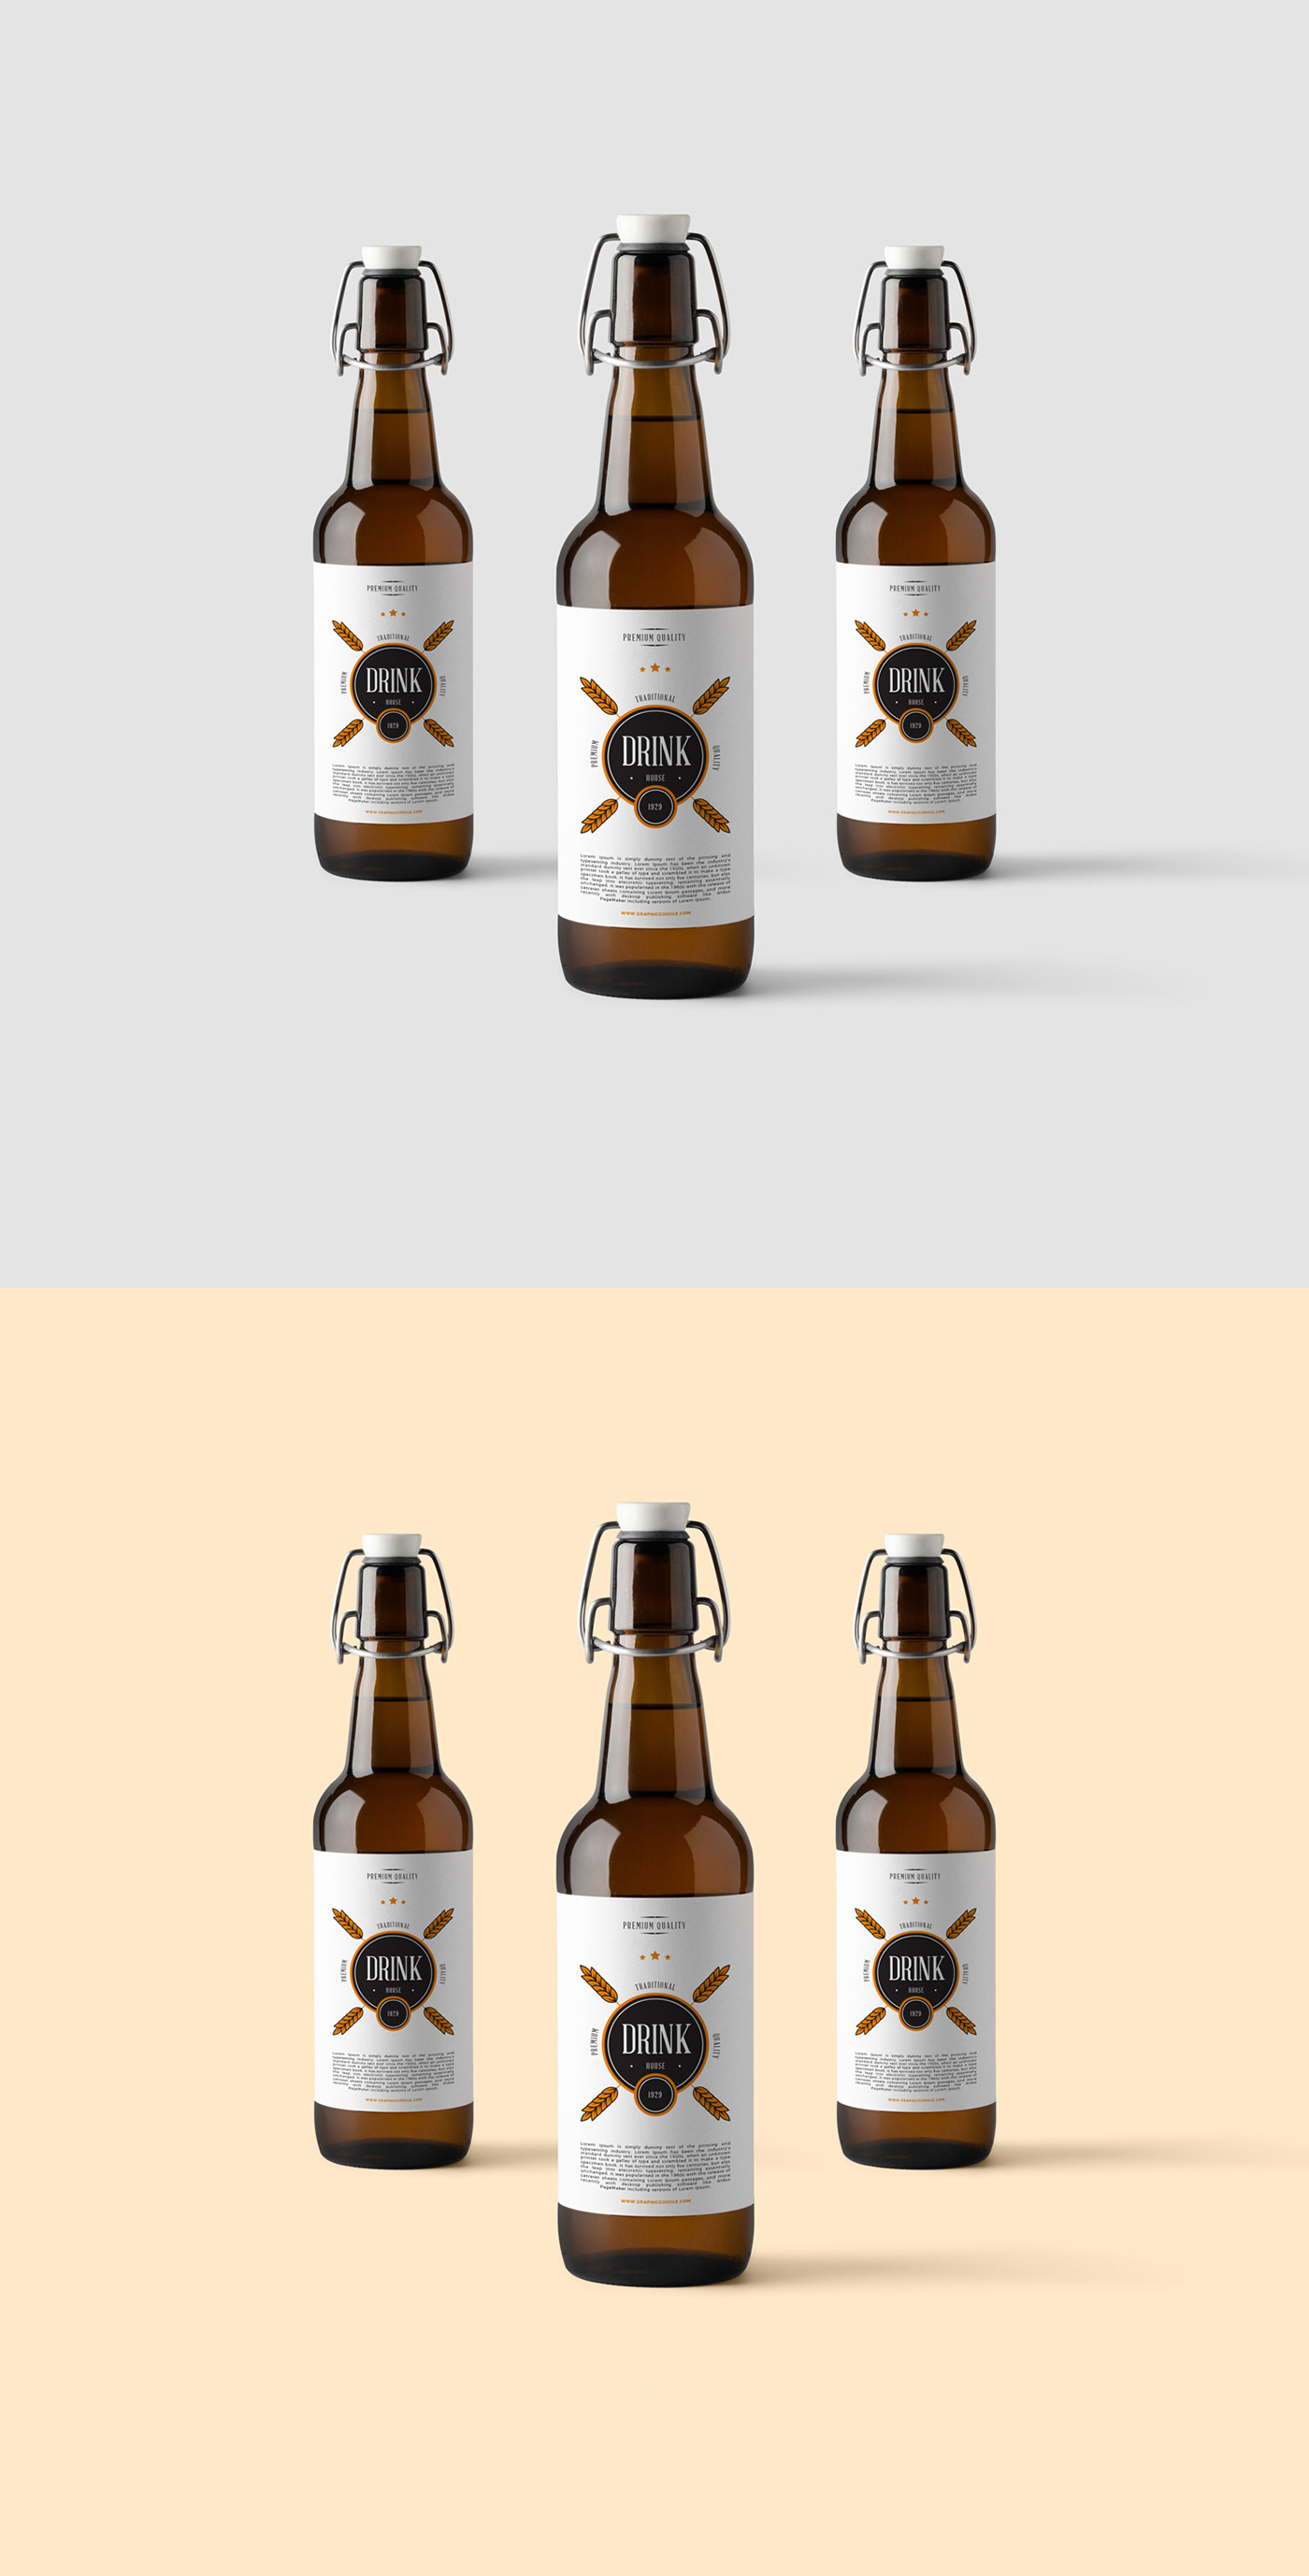 Free-PSD-Beverage-Bottle-Mockup-2018